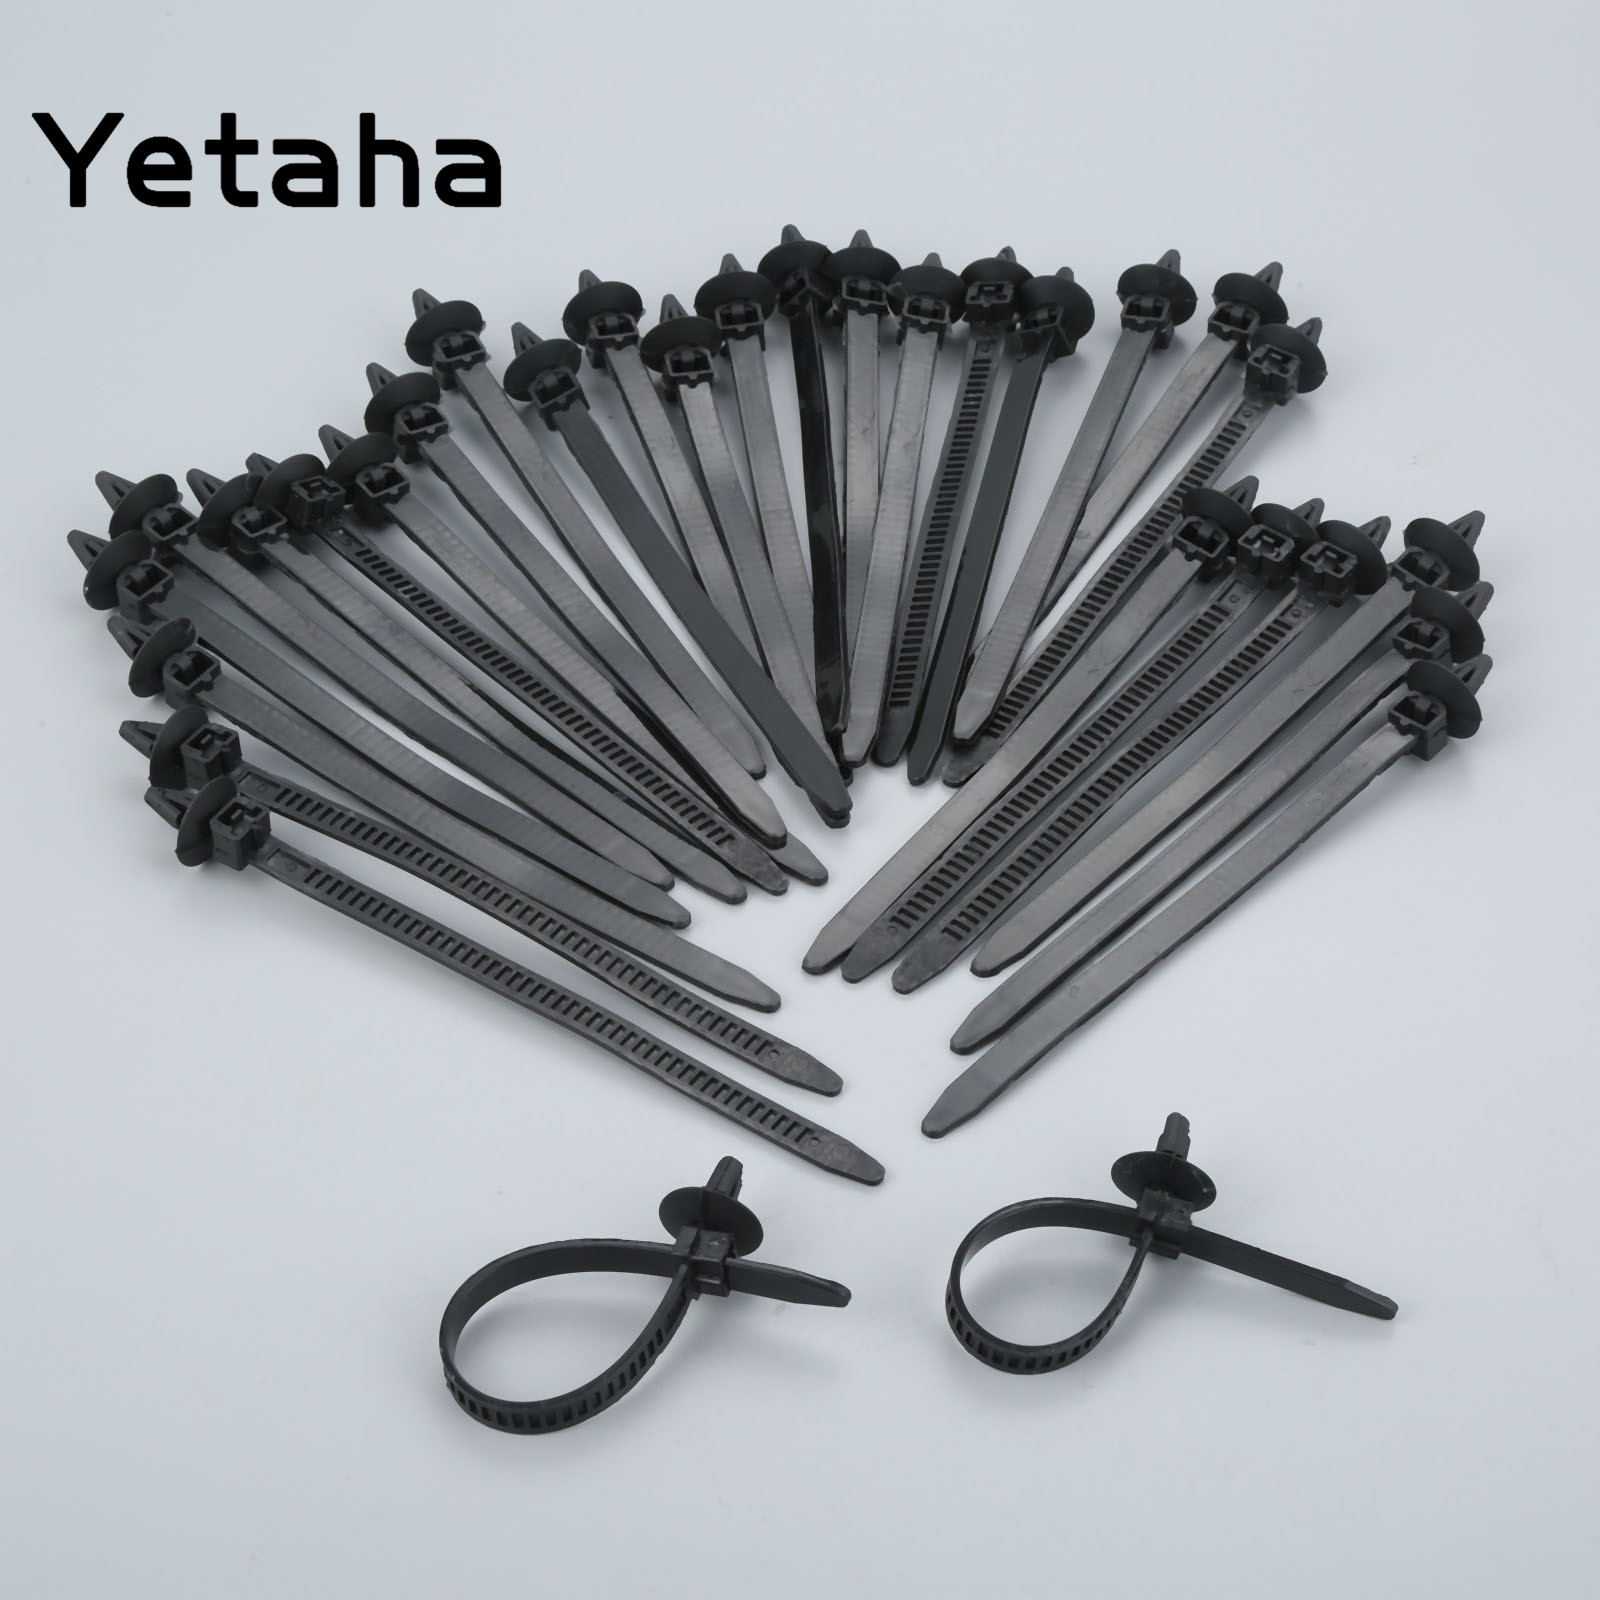 10x Bonnet Underbody Grille Fasteners Clips for Peugeot